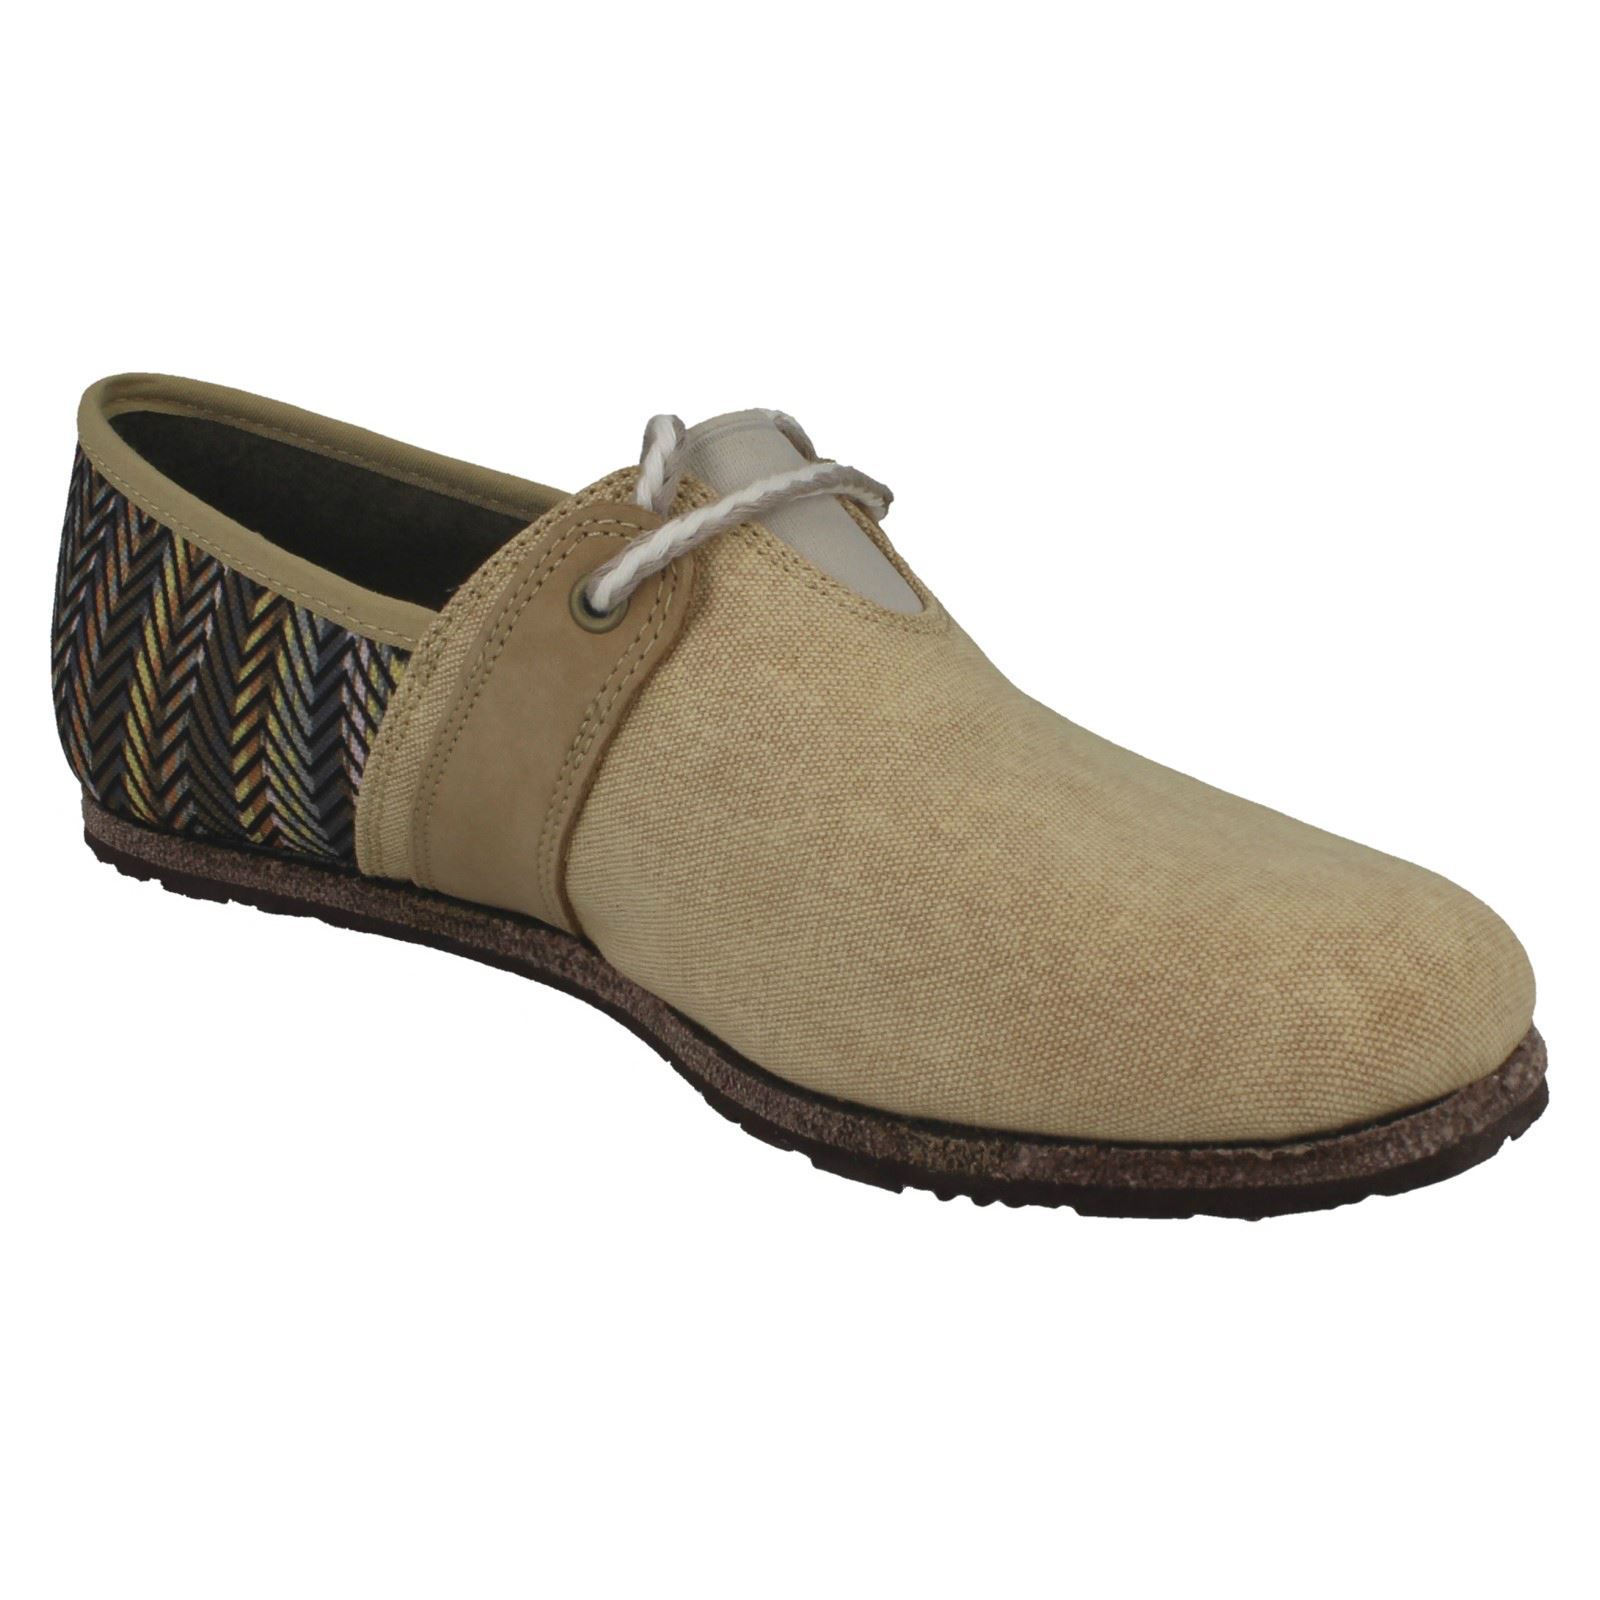 Ladies-Merrell-Casual-Flat-Shoes-Artemisia thumbnail 6